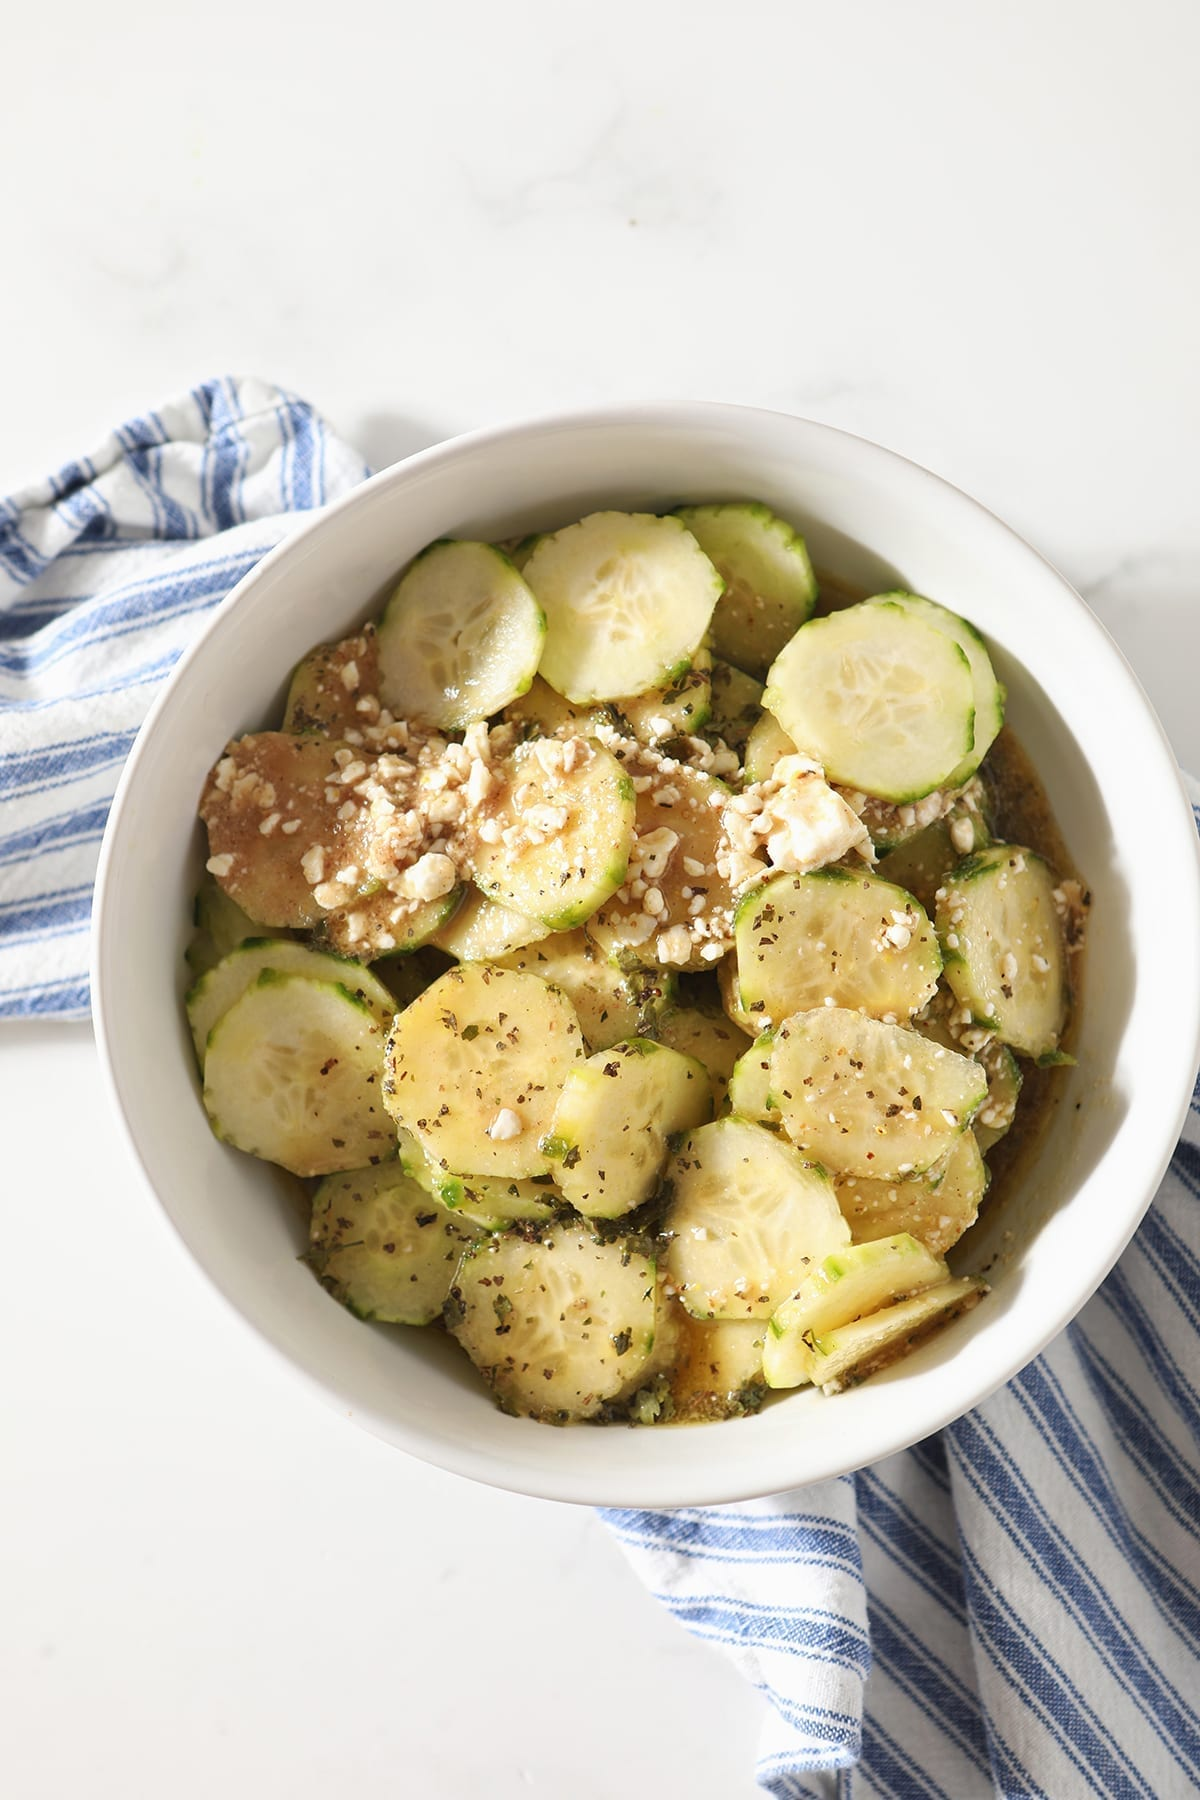 Easy Cucumber Salad with Feta Vinaigrette in a white bowl on top of a blue and white striped towel